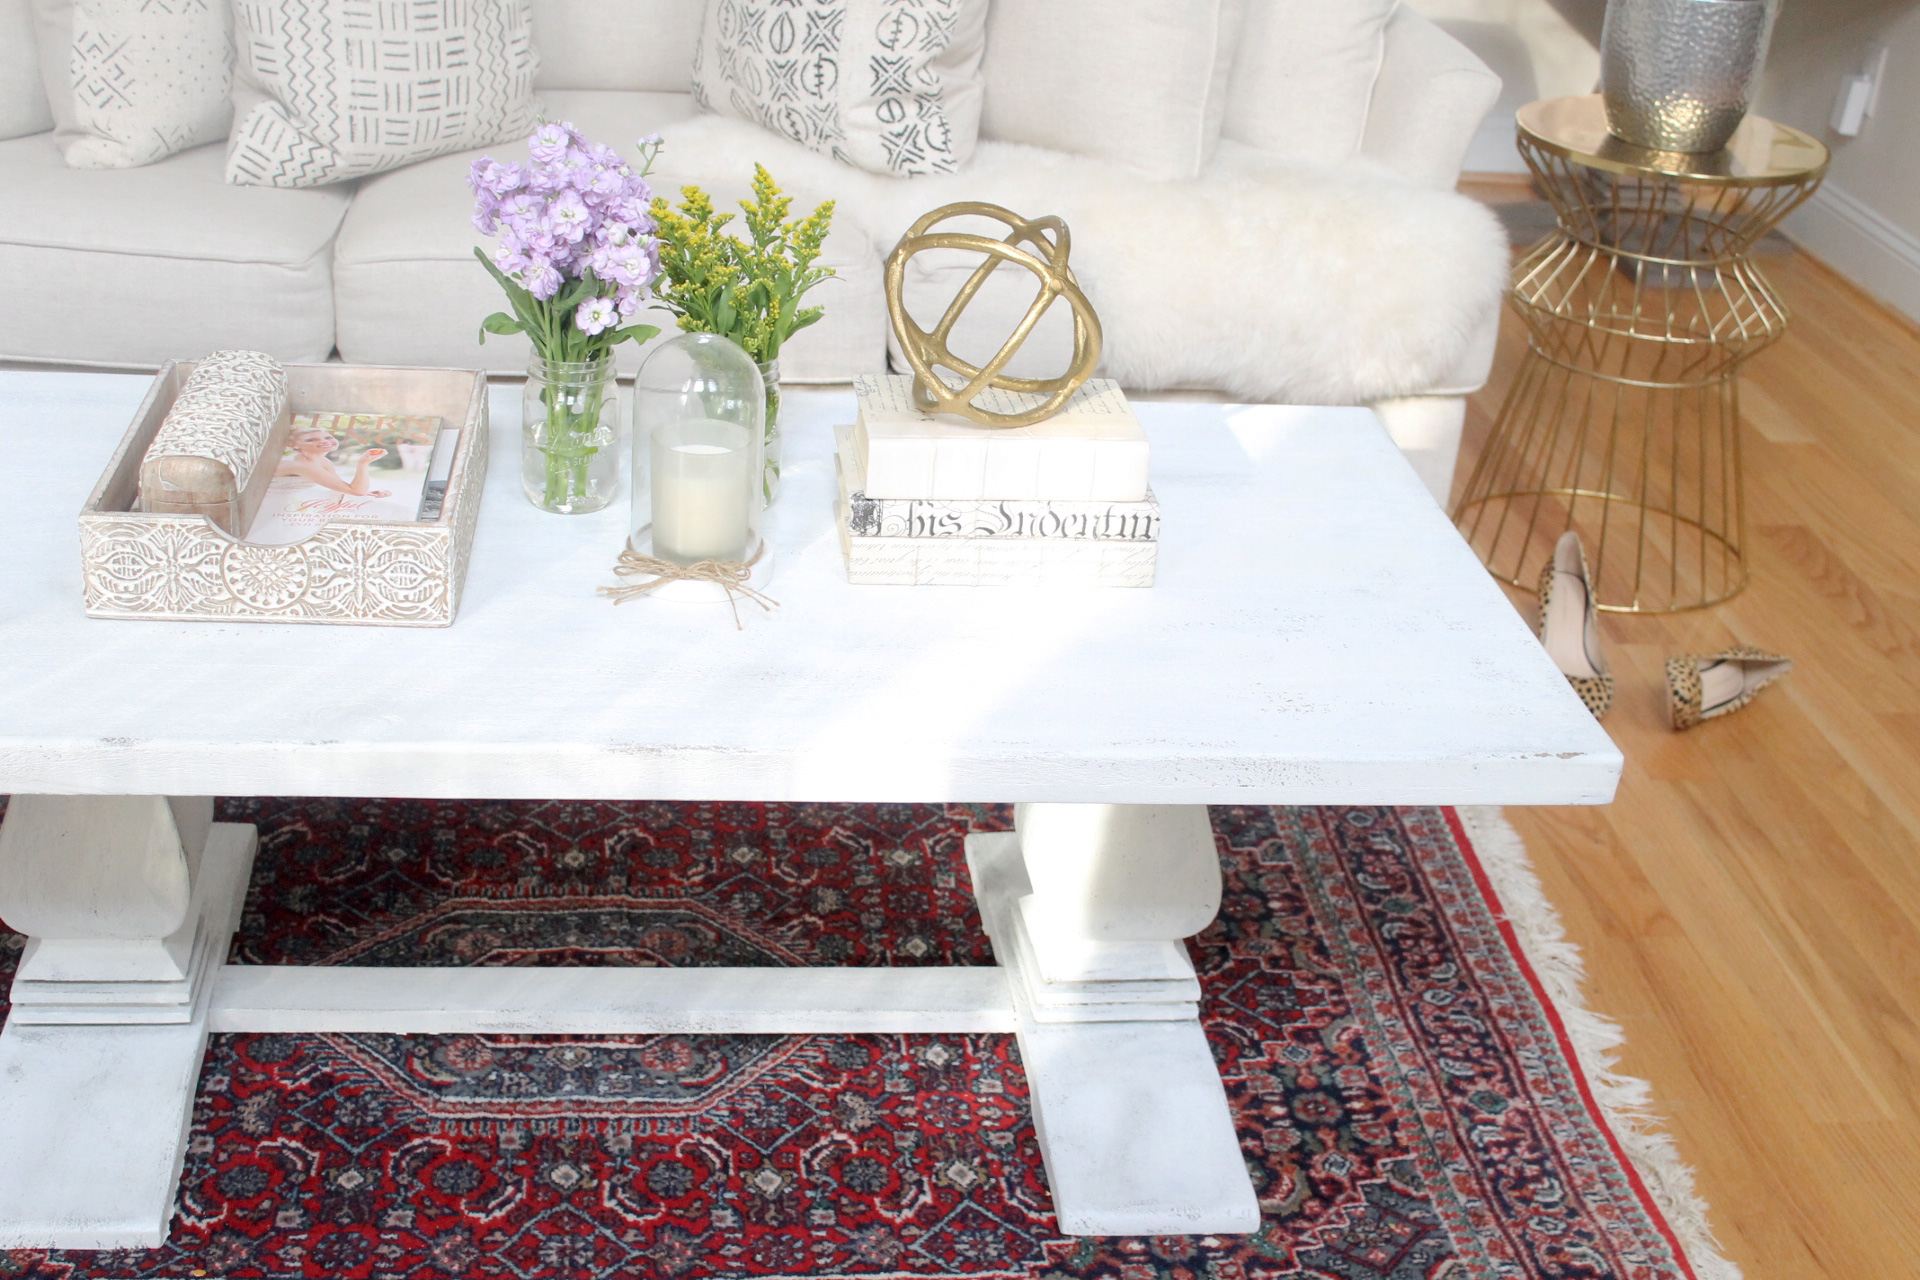 How To Diy A Distressed Shabby Chic Coffee Table The Easy Way